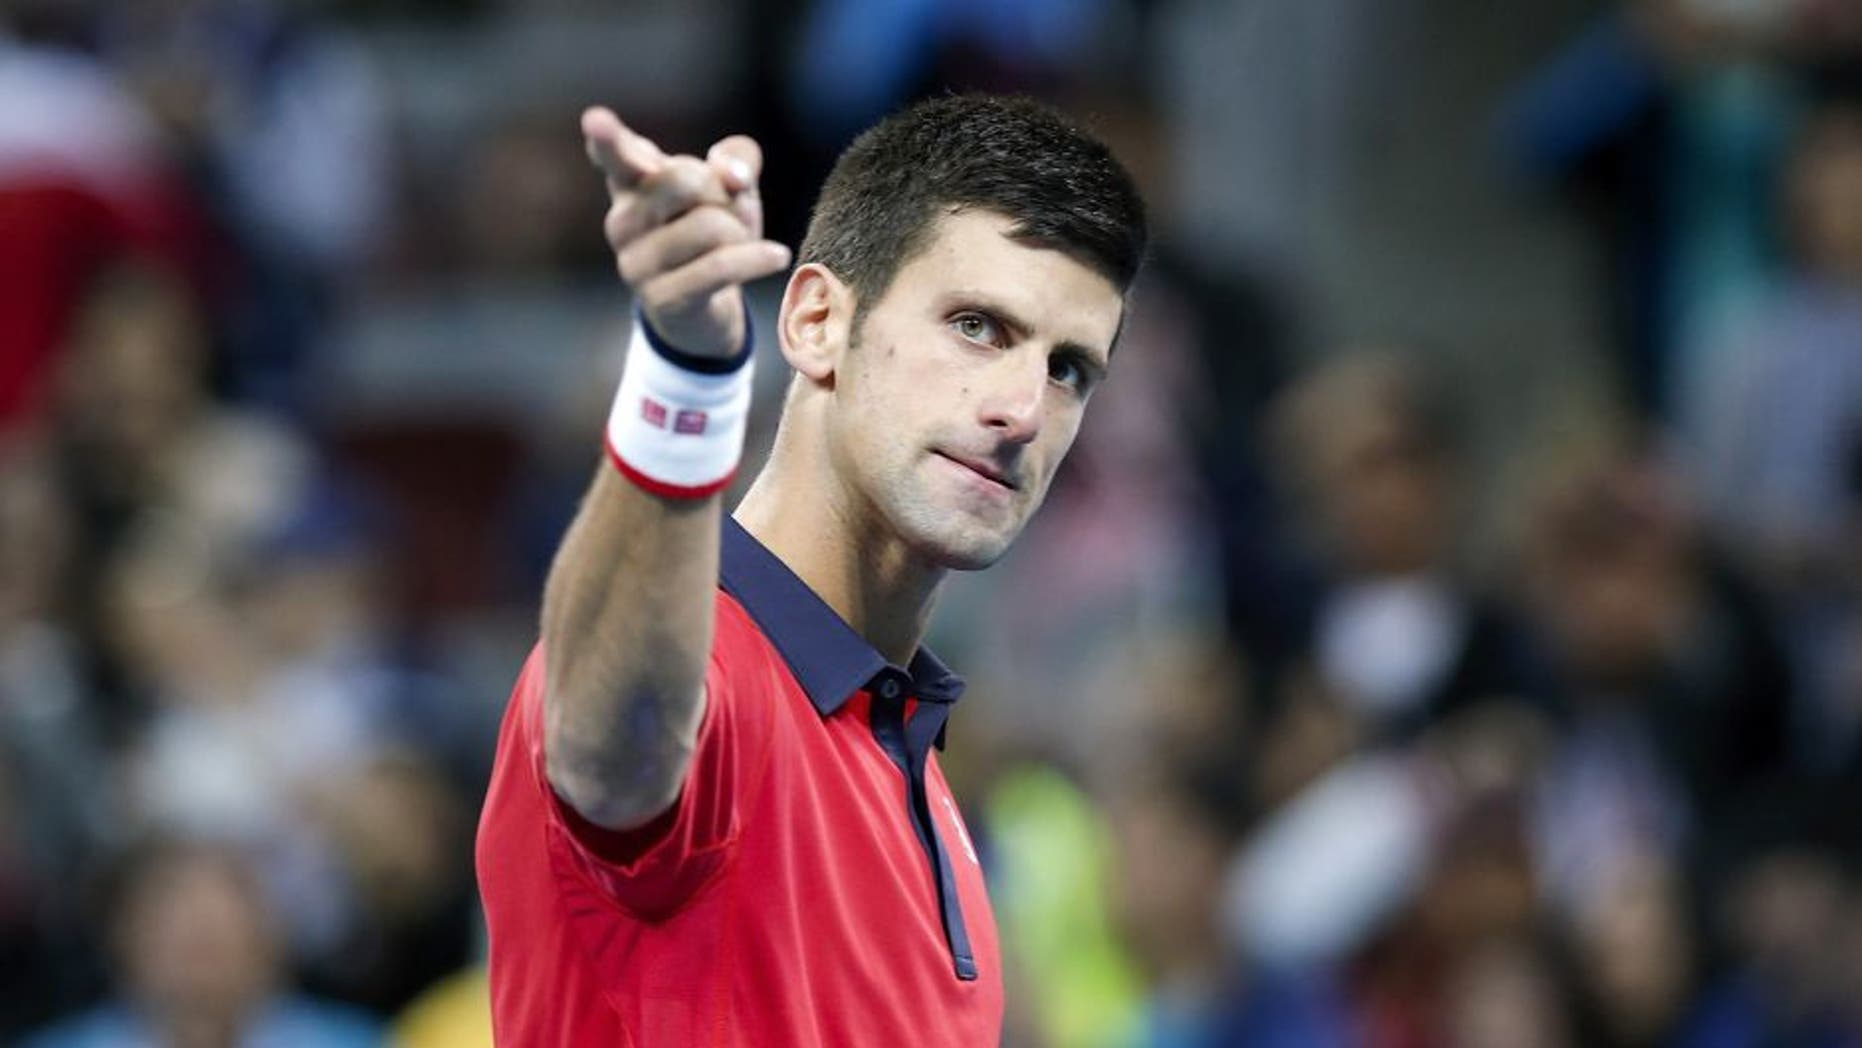 BEIJING, CHINA - OCTOBER 11: Novak Djokovic of Serbia celebrates after winning the Men's Single Final match against Rafael Nadal of Spain on day 9 of the 2015 China Open at the China National Tennis Centre on October 11, 2015 in Beijing, China. (Photo by Lintao Zhang/Getty Images)